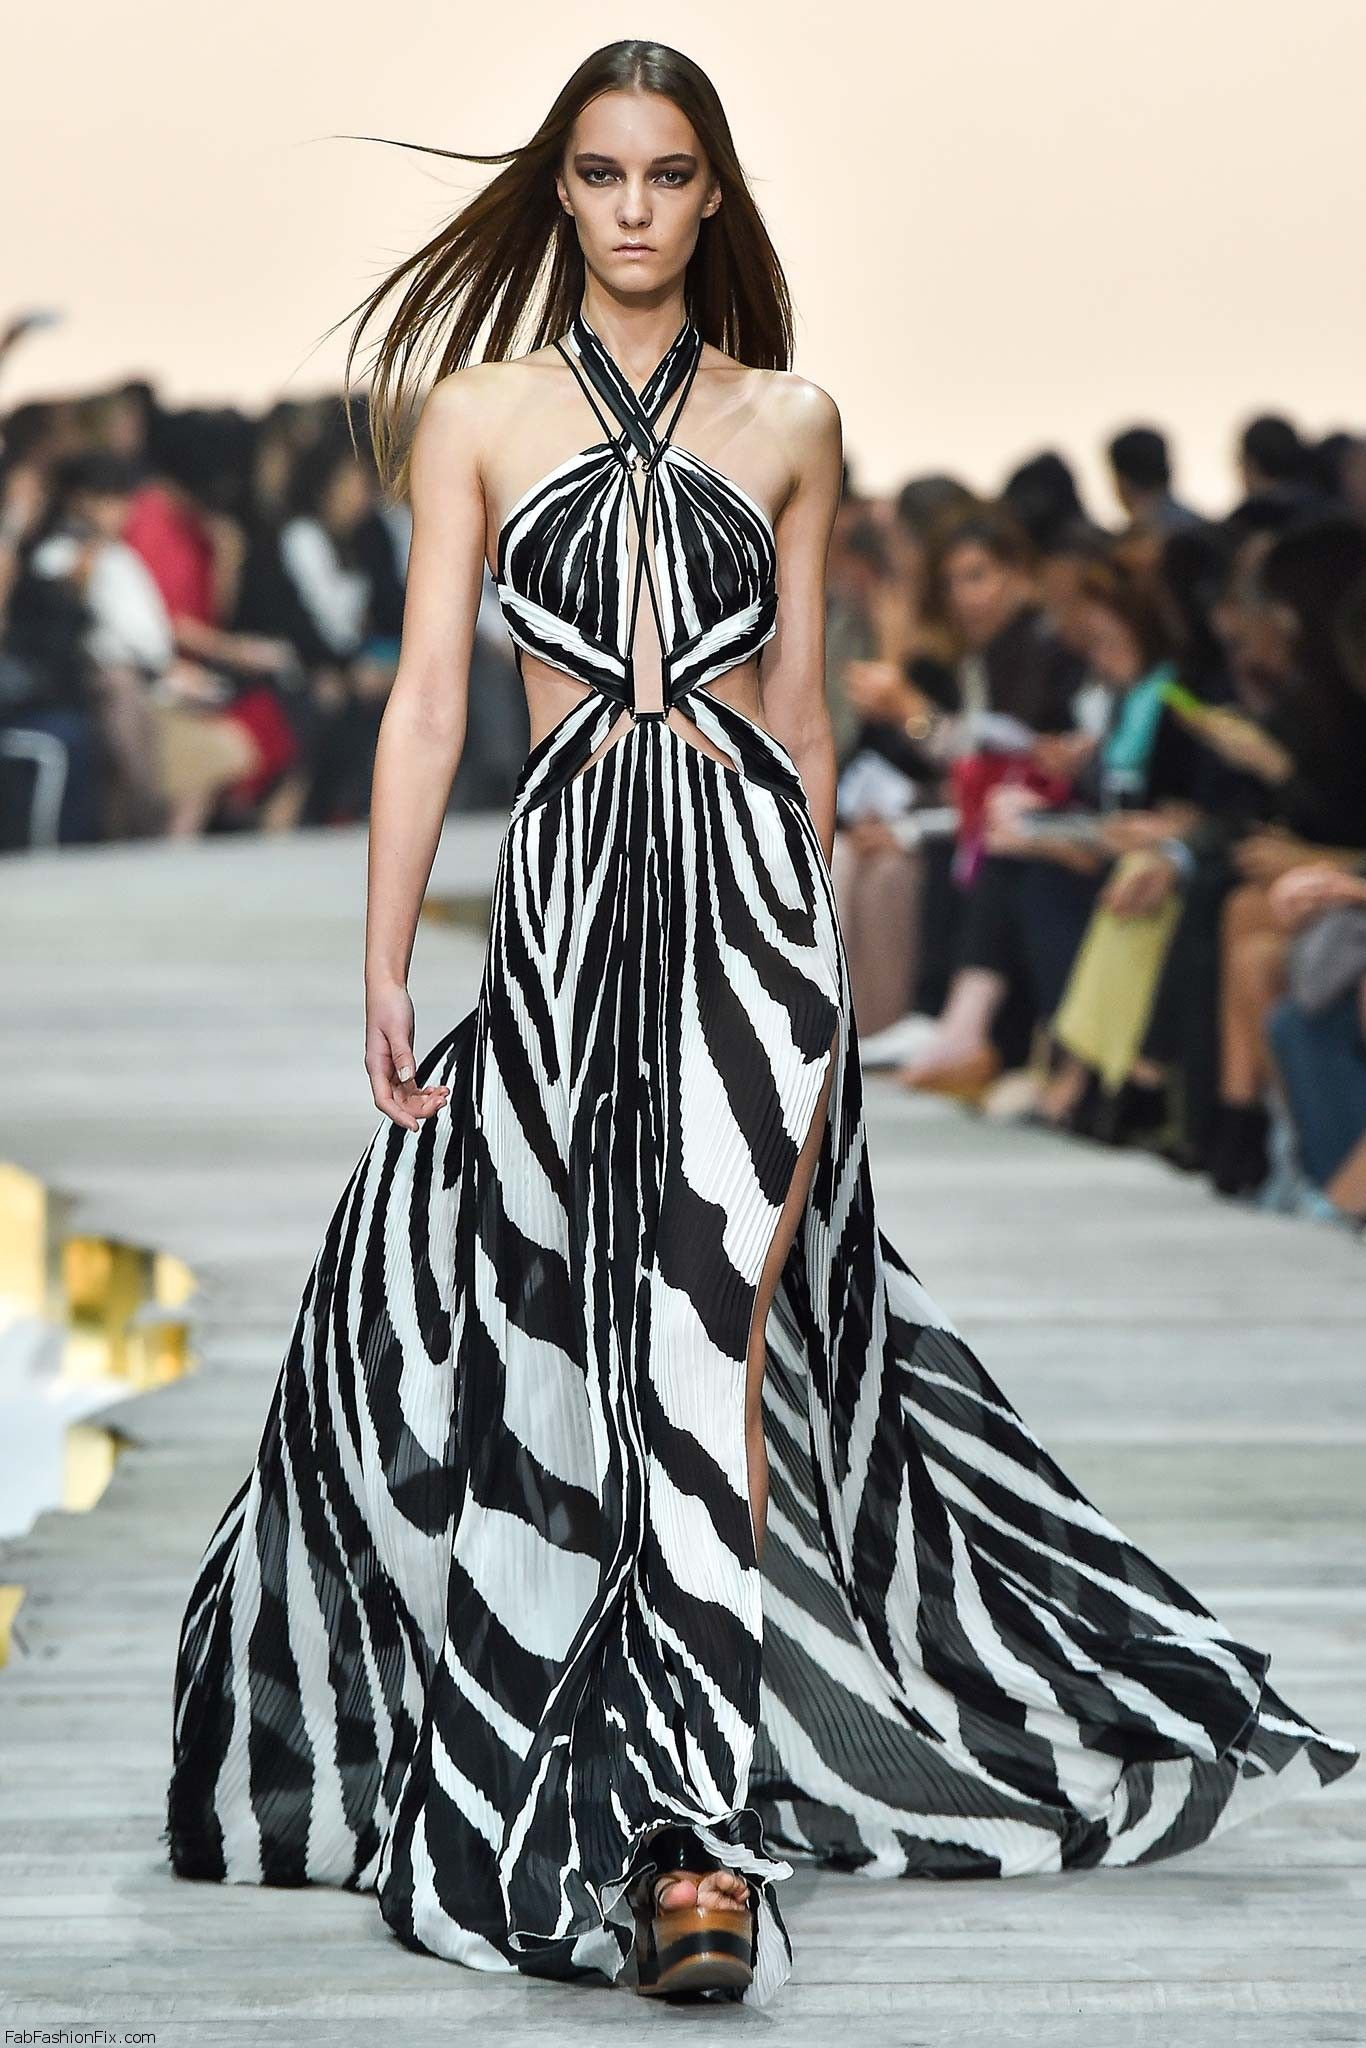 Just Cavalli SpringSummer 2015 Collection – Milan Fashion Week recommendations